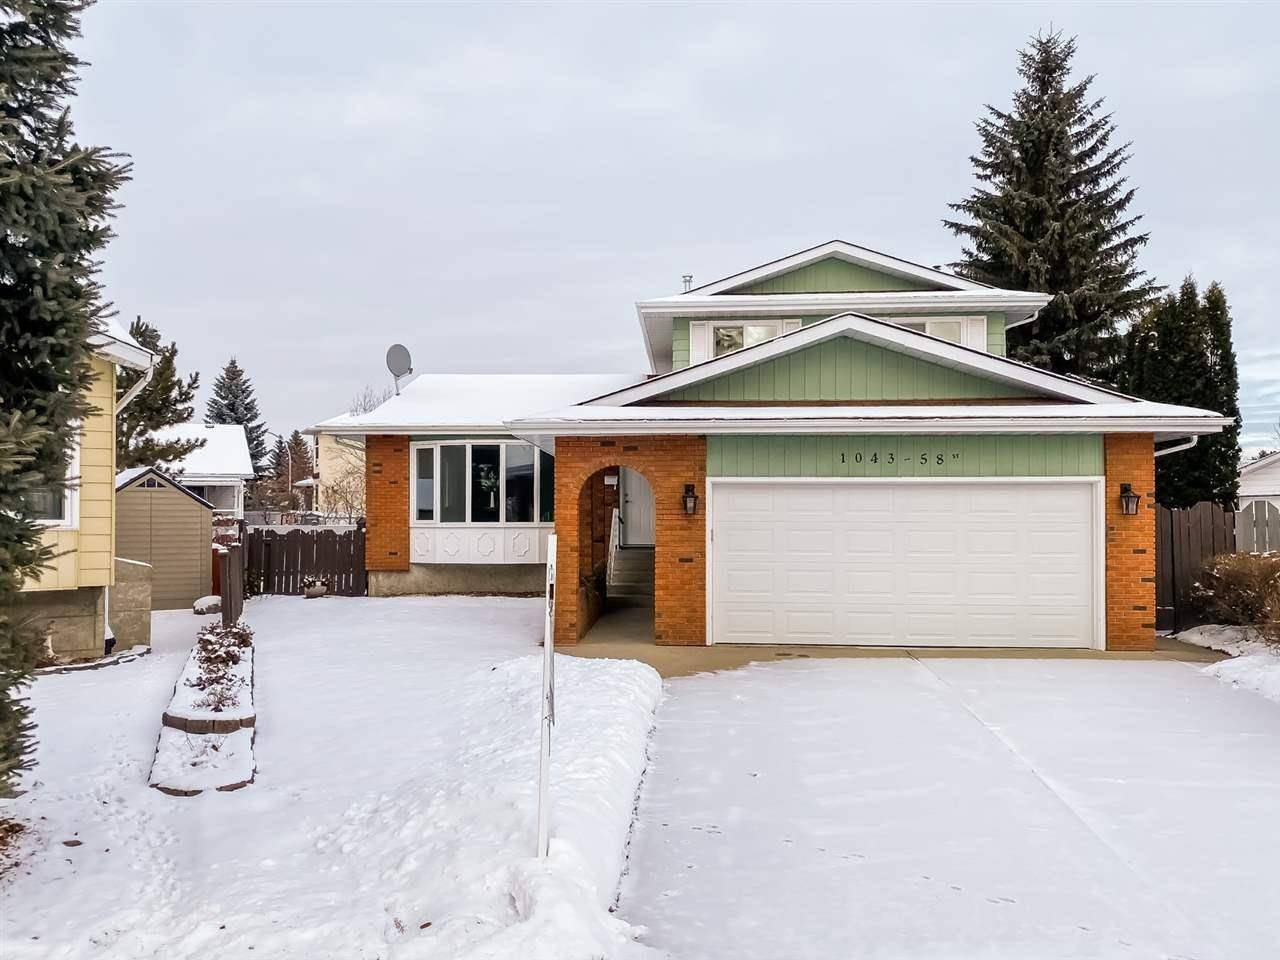 House for sale at 1043 58 St Nw Edmonton Alberta - MLS: E4176925